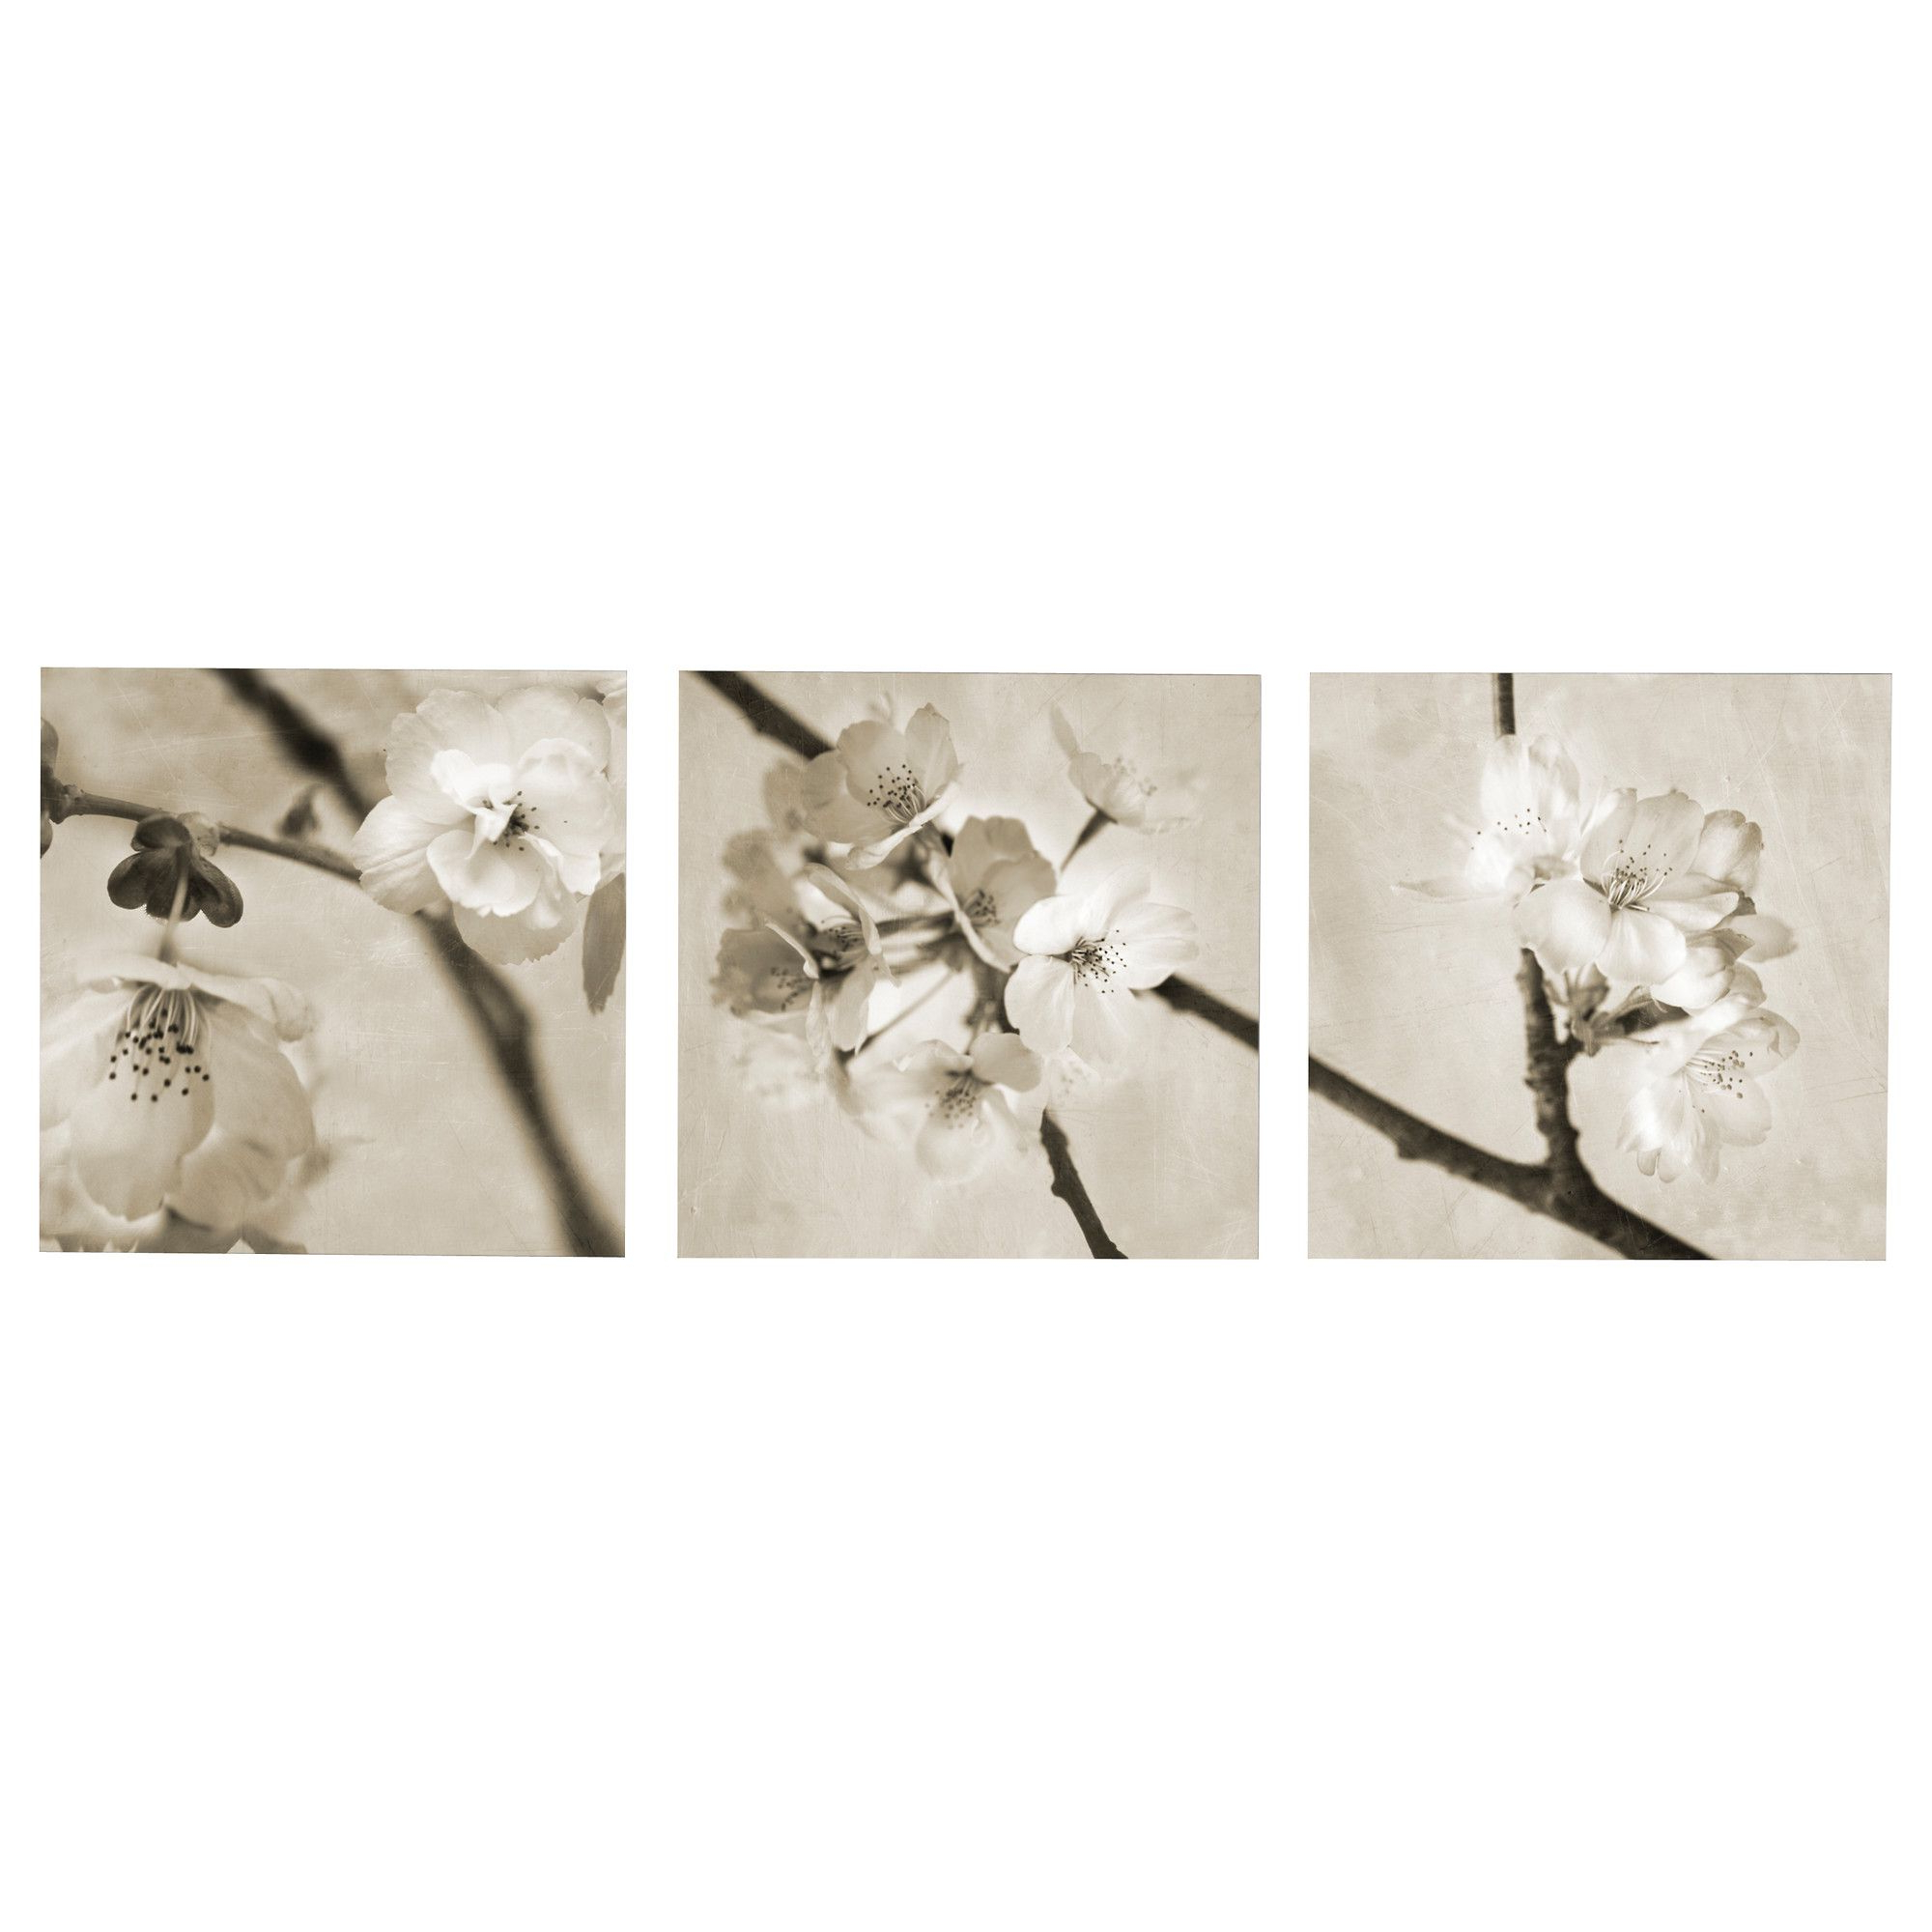 Widely Used 3 Piece Ceramic Flowers Wall Decor Sets Inside Pjätteryd Picture, Set Of 3 – Ikea (View 17 of 20)